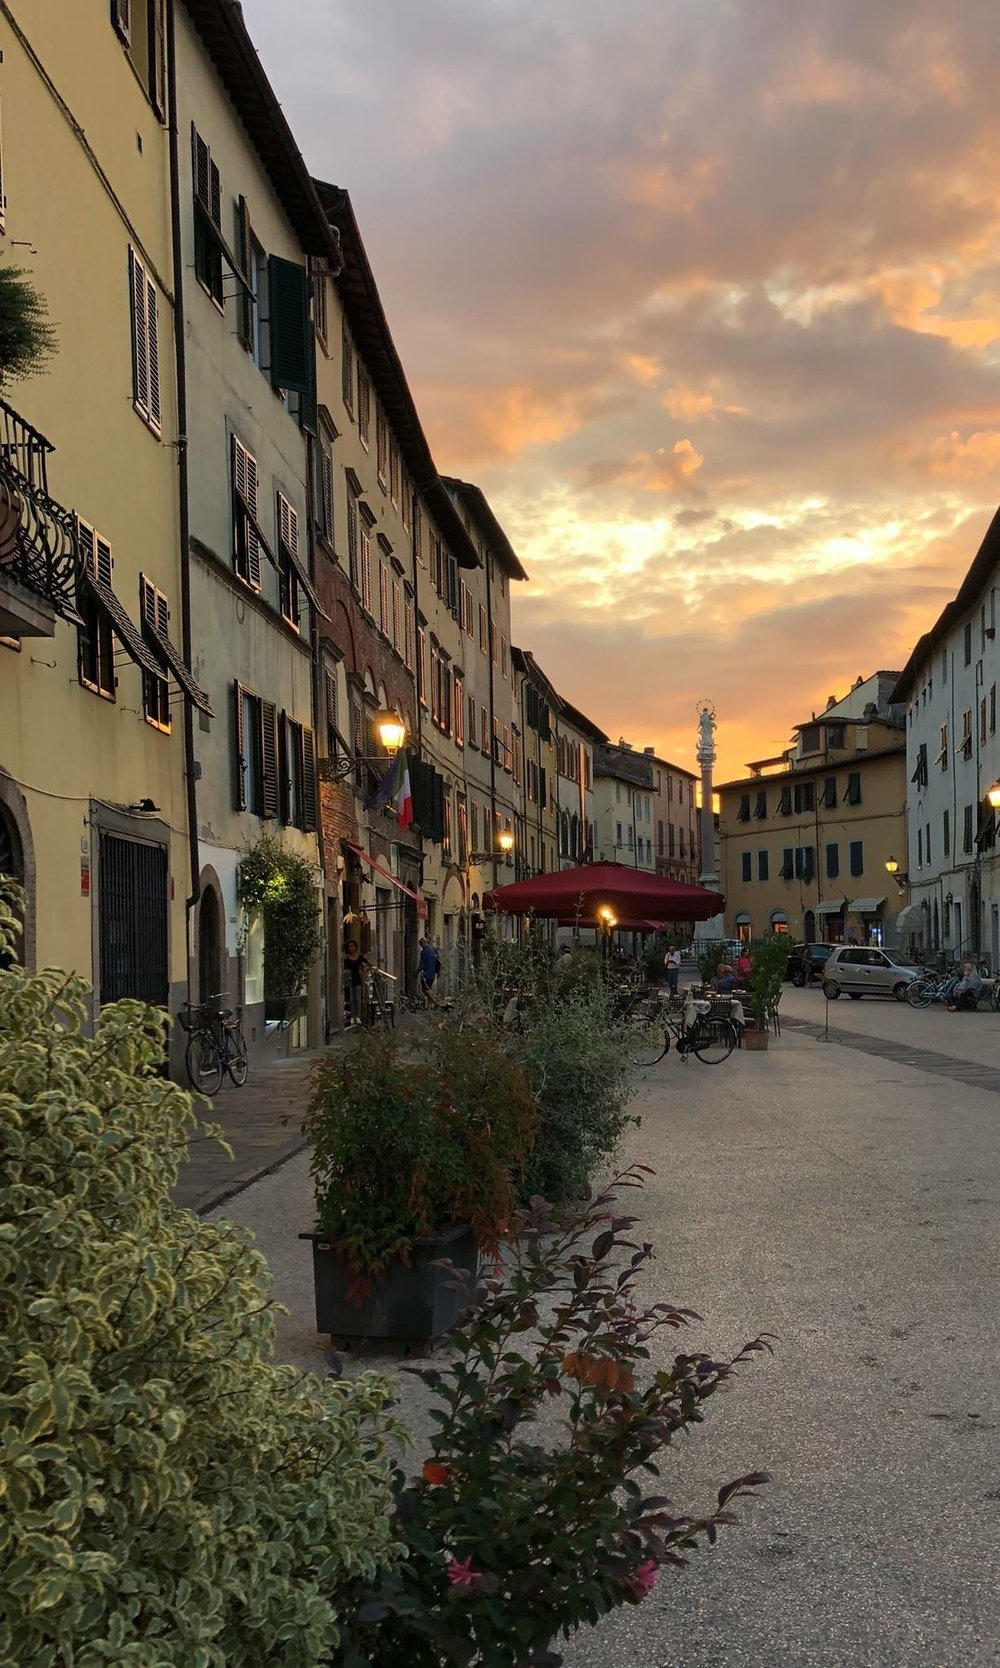 A perfect mid-September evening in Piazza San Francesco, Lucca. Photo by Jim Carnevale, used with permission.